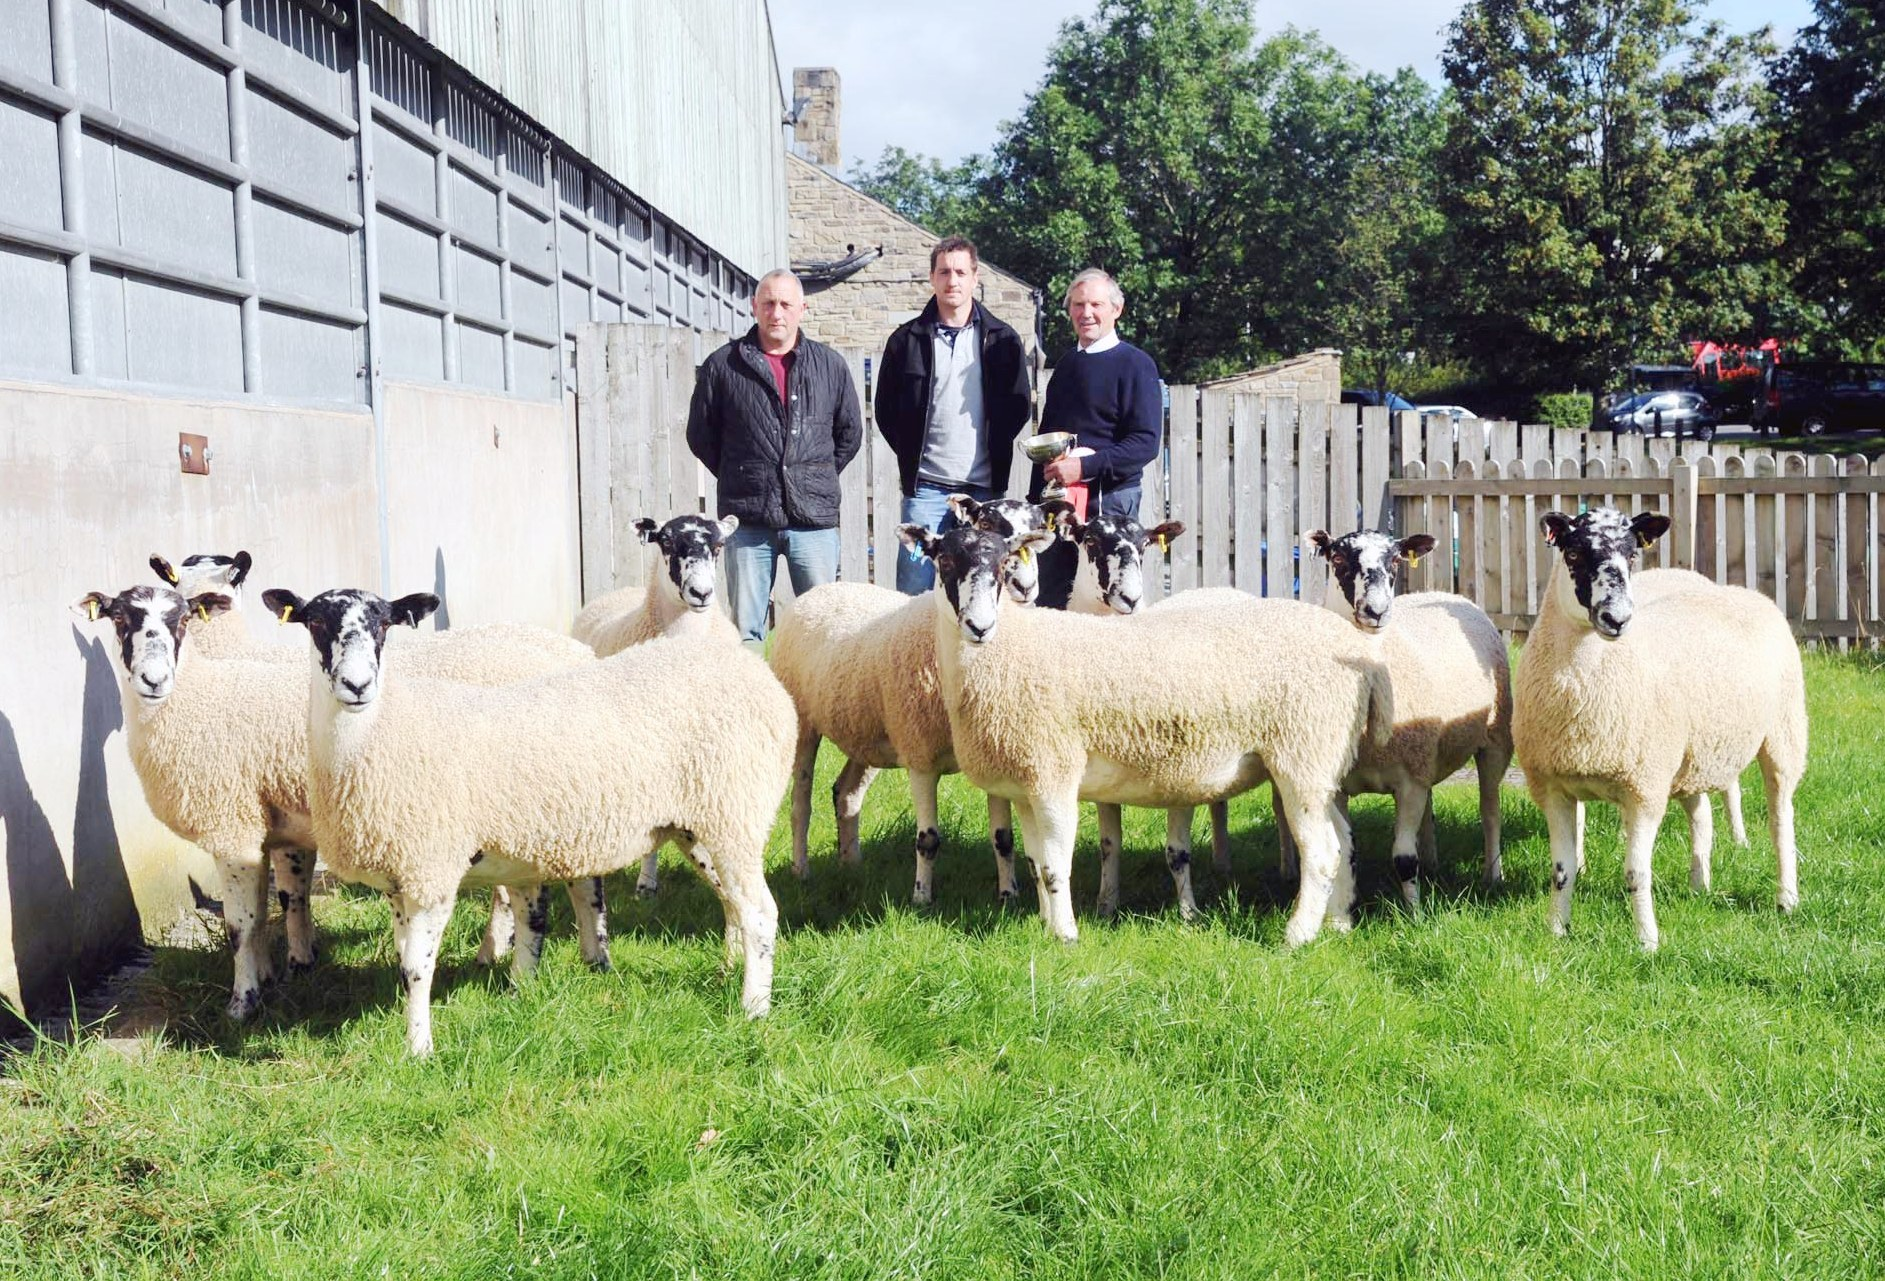 John Greenhalgh, right, with his champion pen of Mule gimmer shearlings, joined by co-judges Andrew Ogden, left, and Warwick Gill, who purchased the victors.